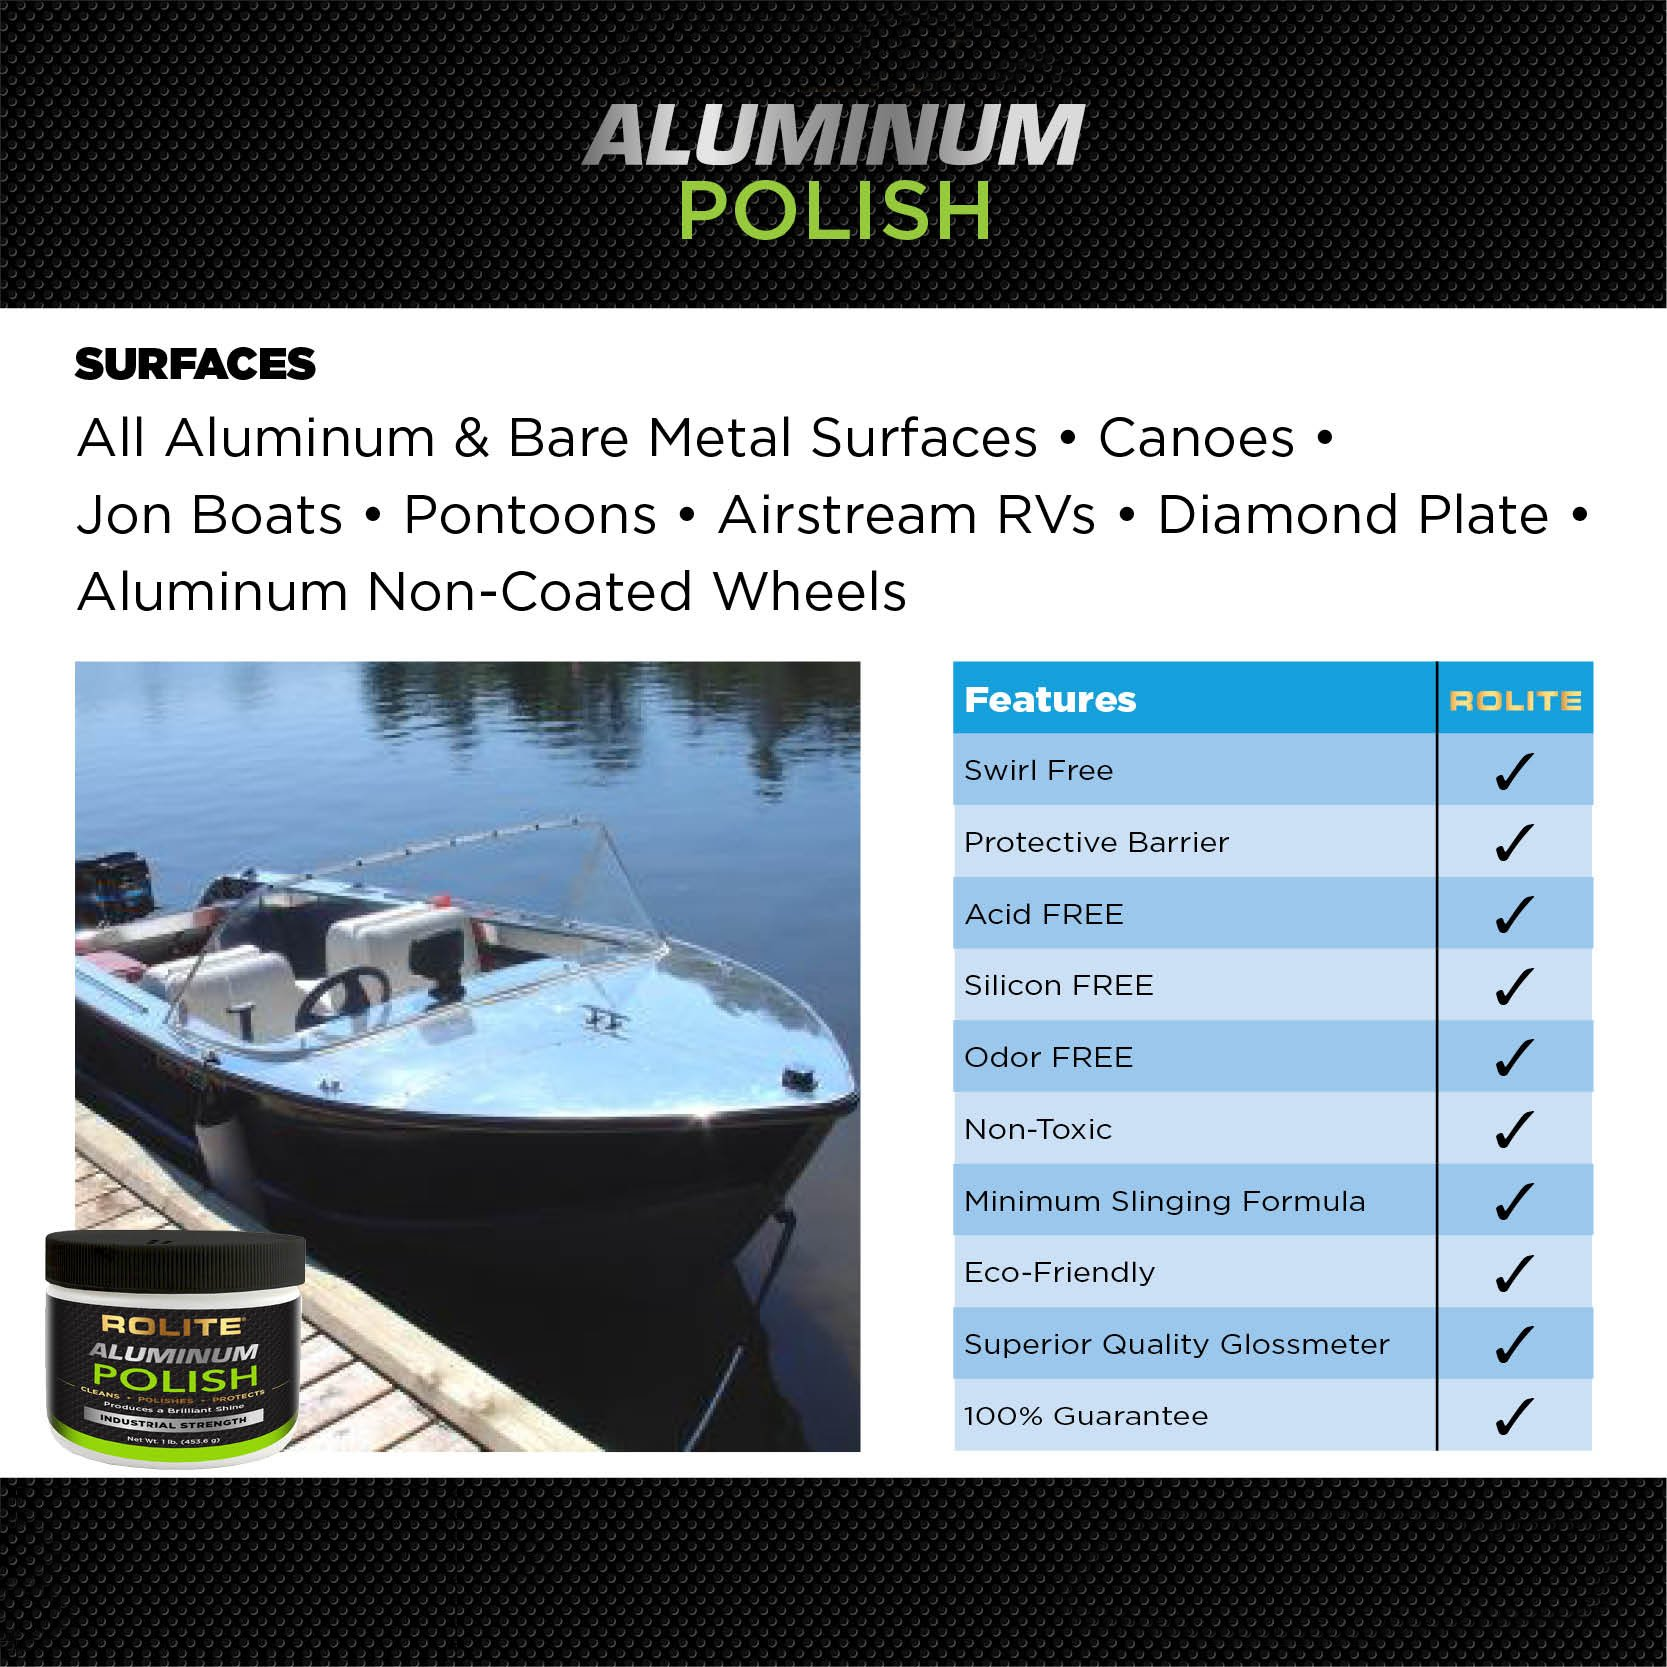 Rolite Aluminum Polish (2lb) for All Aluminum & Bare Metal Surfaces, Canoes, Jon Boats, Pontoons, Diamond Plate, Aluminum Non-Coated Wheels 2 Pack by Rolite (Image #4)